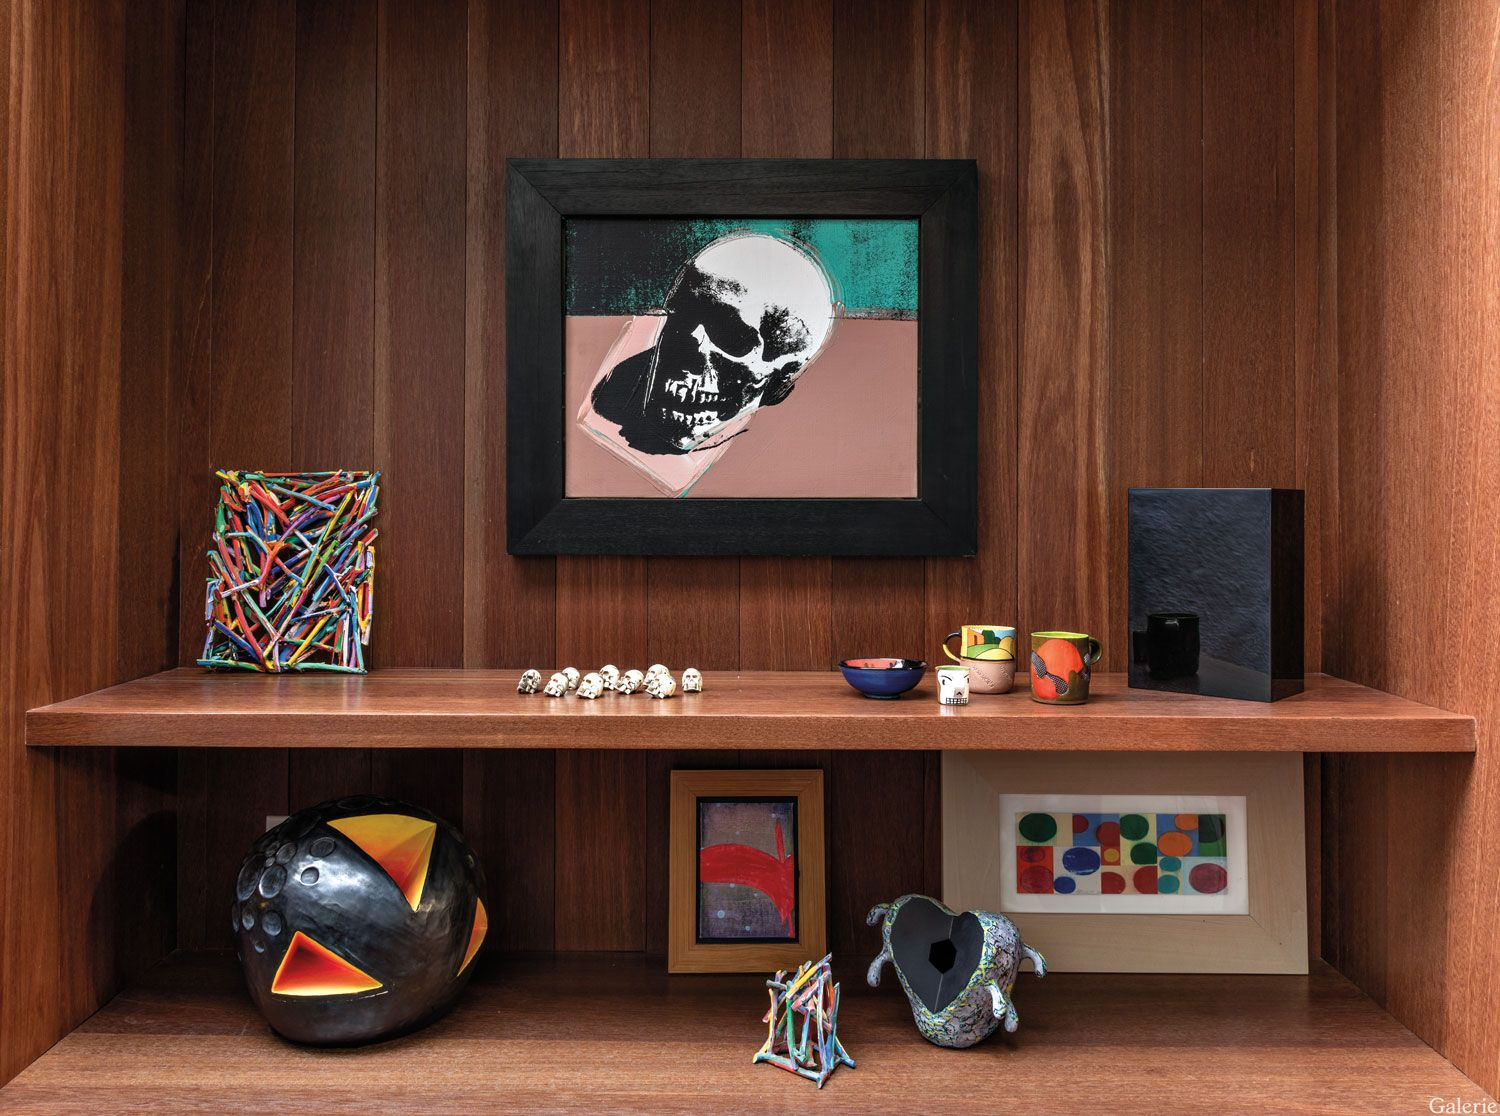 An Andy Warhol skull is grouped with works by Arnoldi, Ken Price, John McCracken, and Natalie Arnoldi in a bookcase.